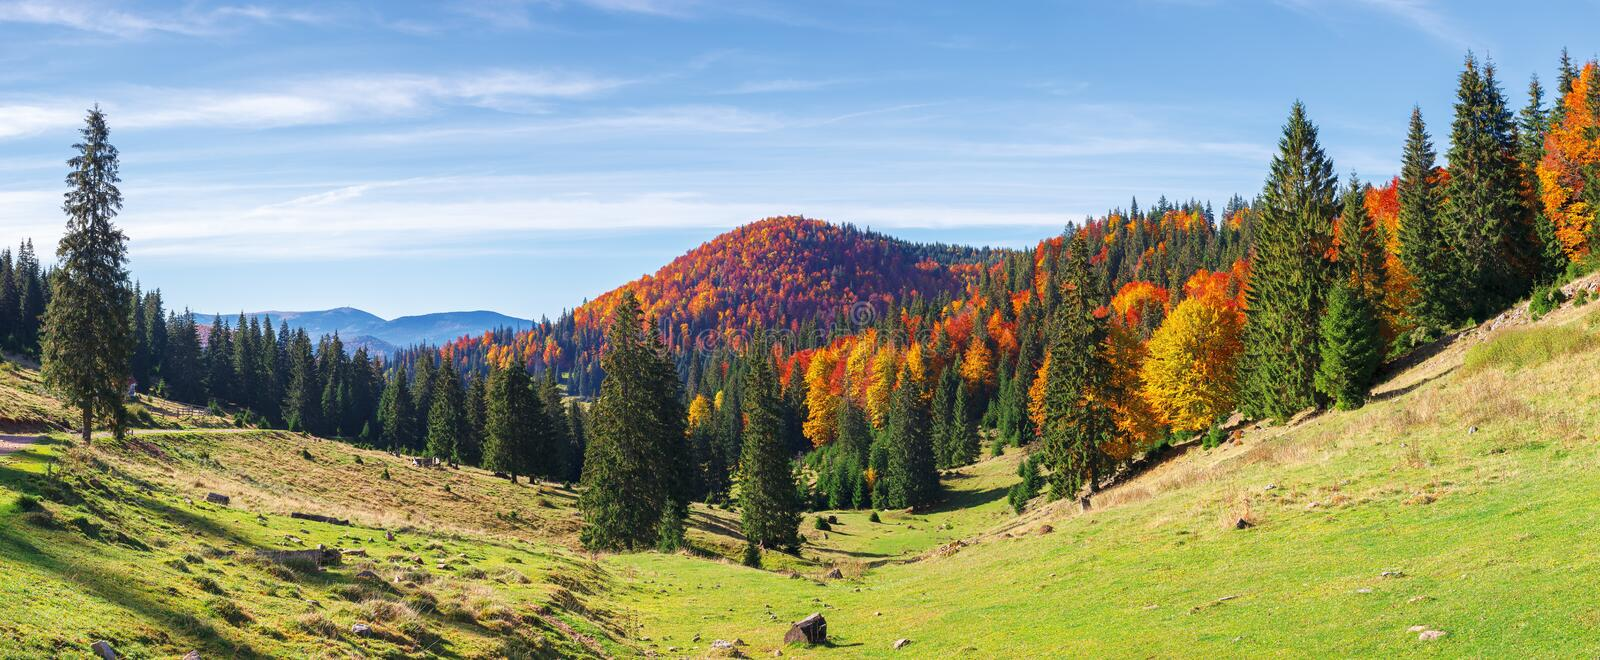 Apuseni natural park in autumn. Amazing morning panorama of varasoaia meadow, bihor, romania. forest on the mountain in fall color. spruce trees in the valley royalty free stock photos